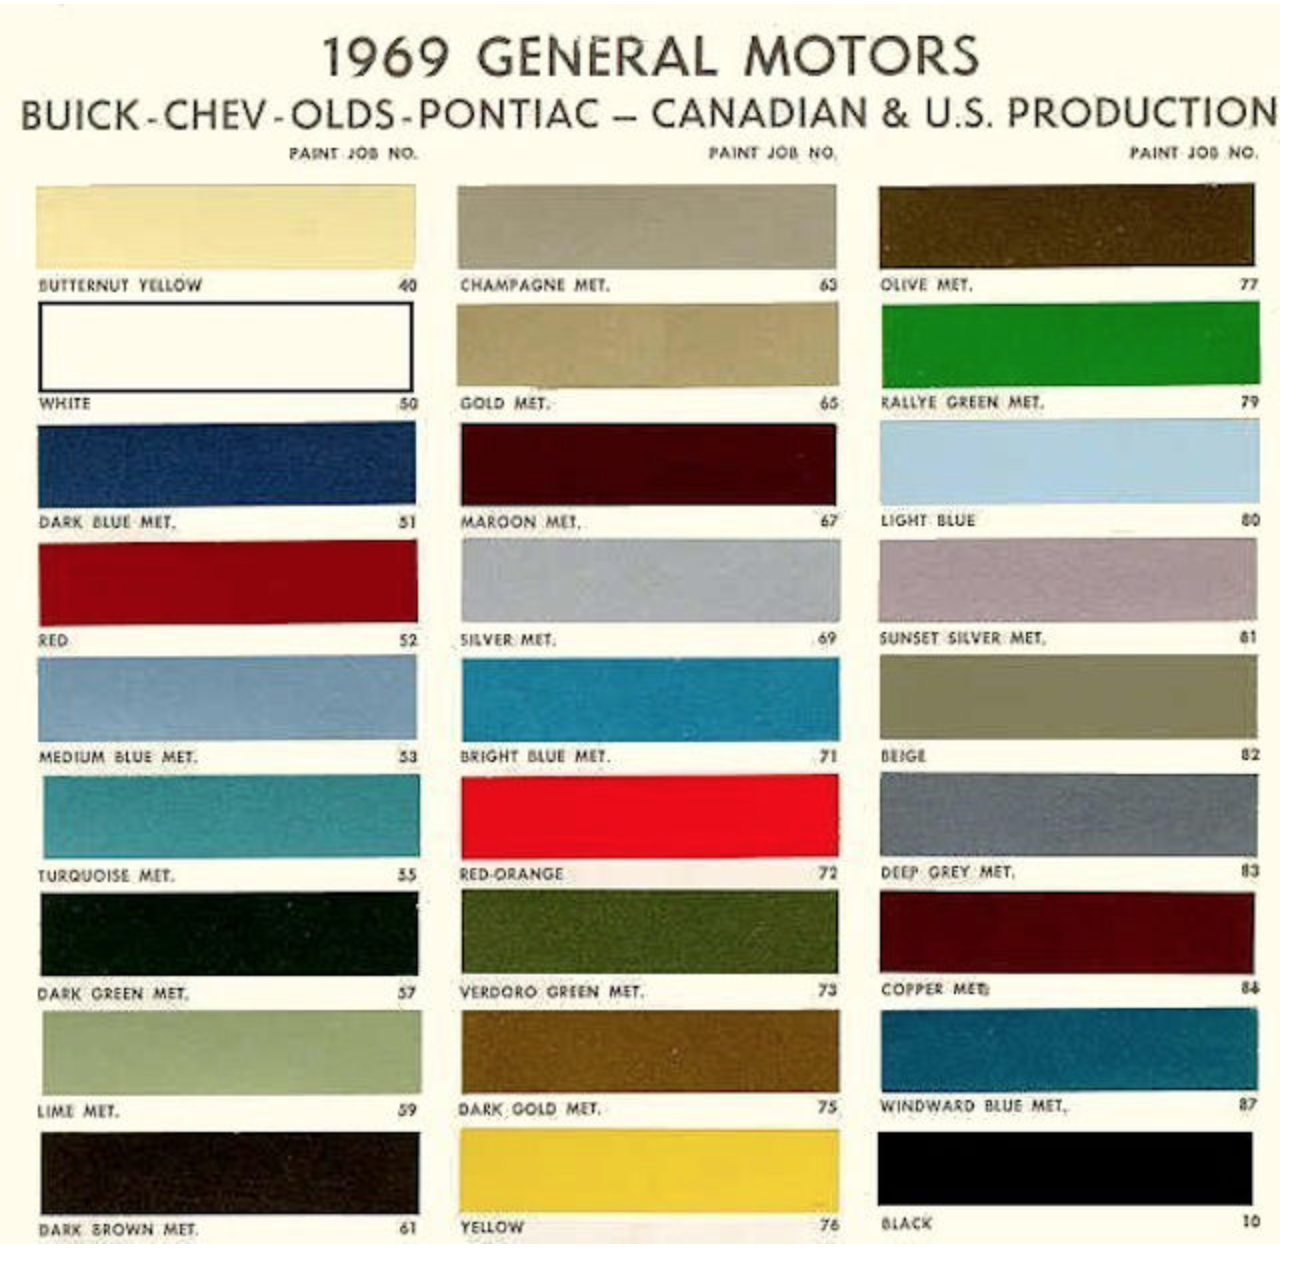 Buick red 69 buick riviera pinterest buick riviera color chart for car paint 1969 canadian color chart nvjuhfo Images